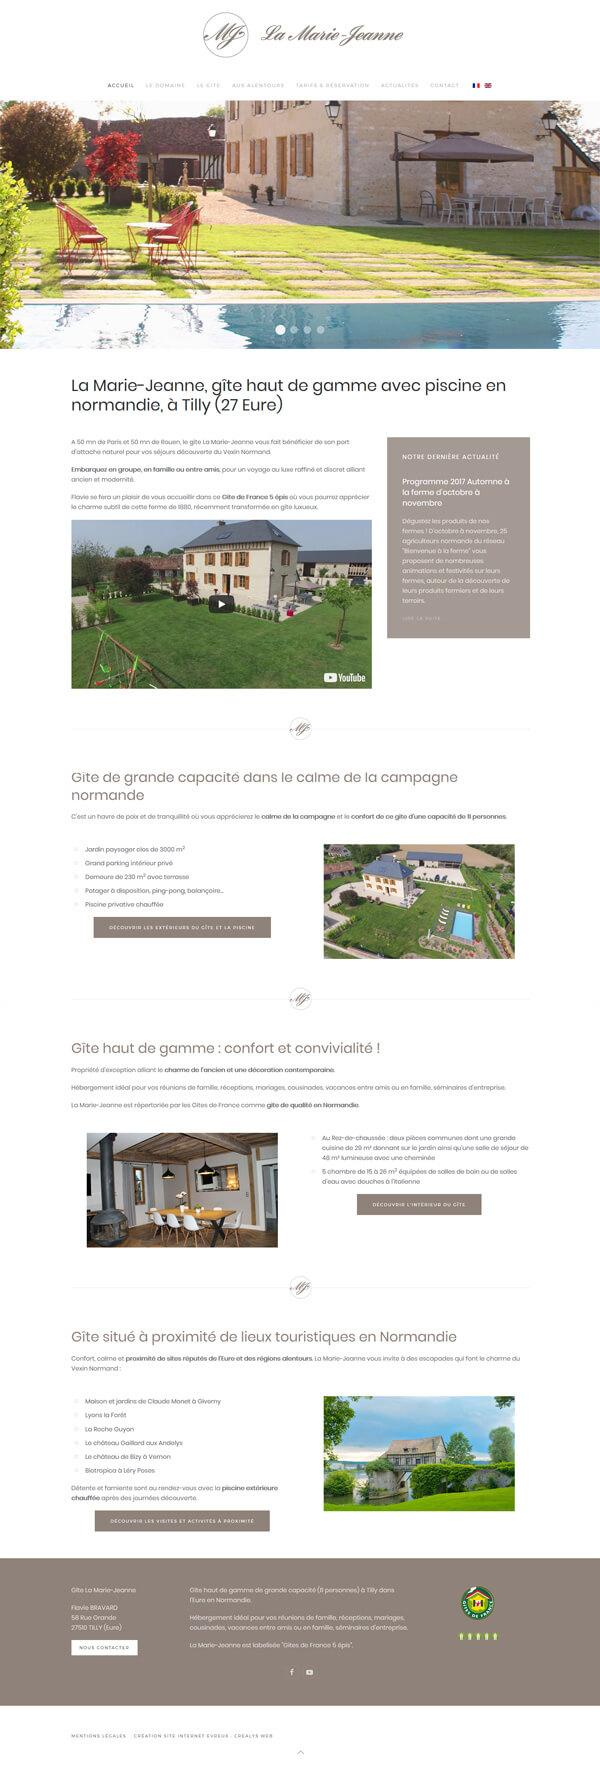 site web gite tourisme hotellerie marie jeanne vernon giverny